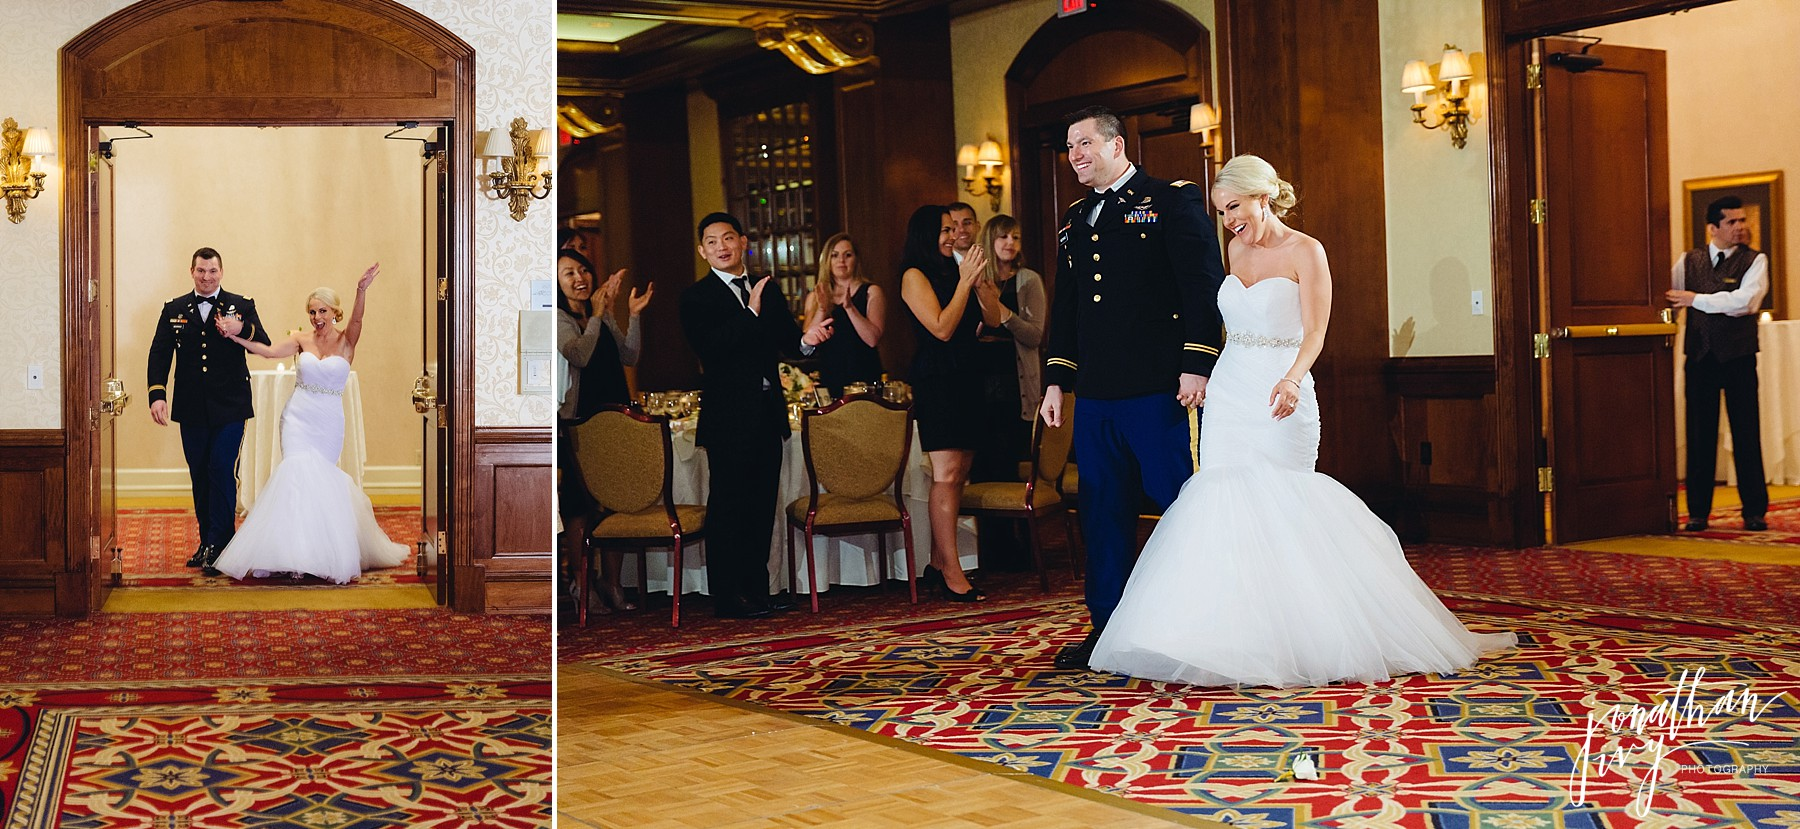 Chateau-Polonez-Wedding-Houston_0026.jpg